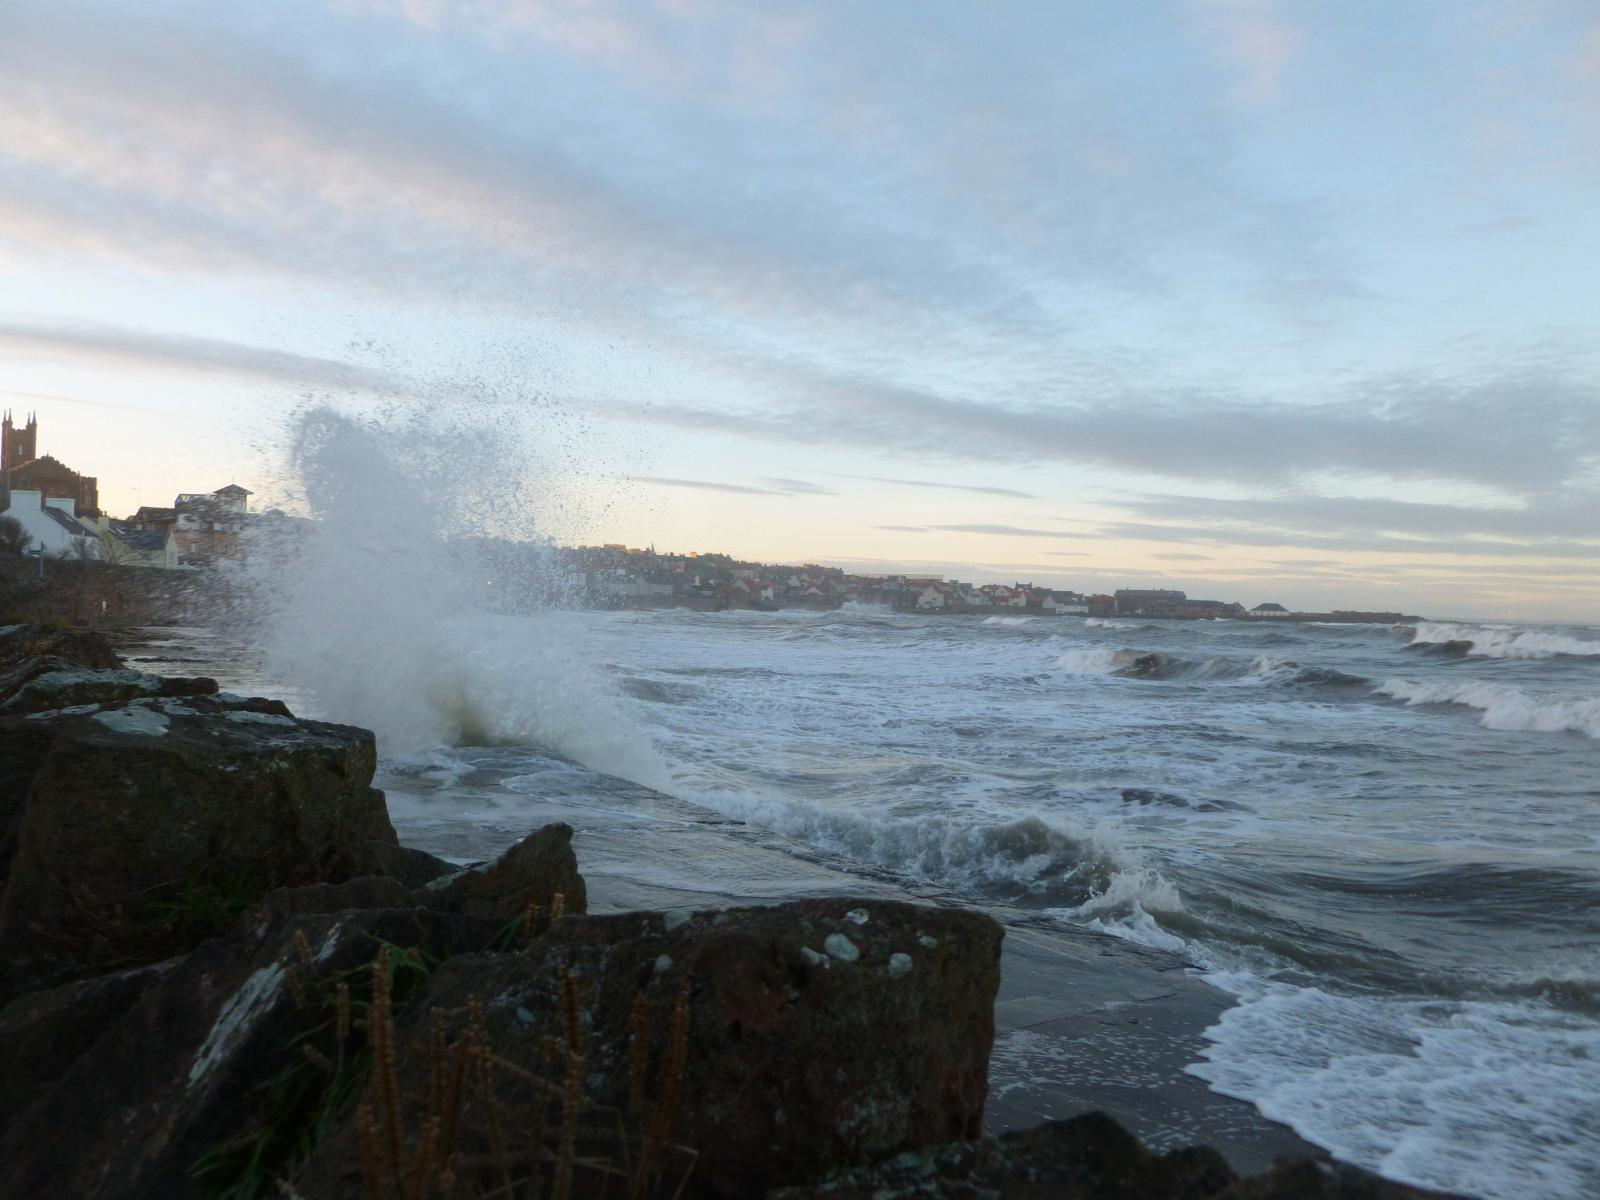 UK weather : A potentially stormy week - mid September Gales